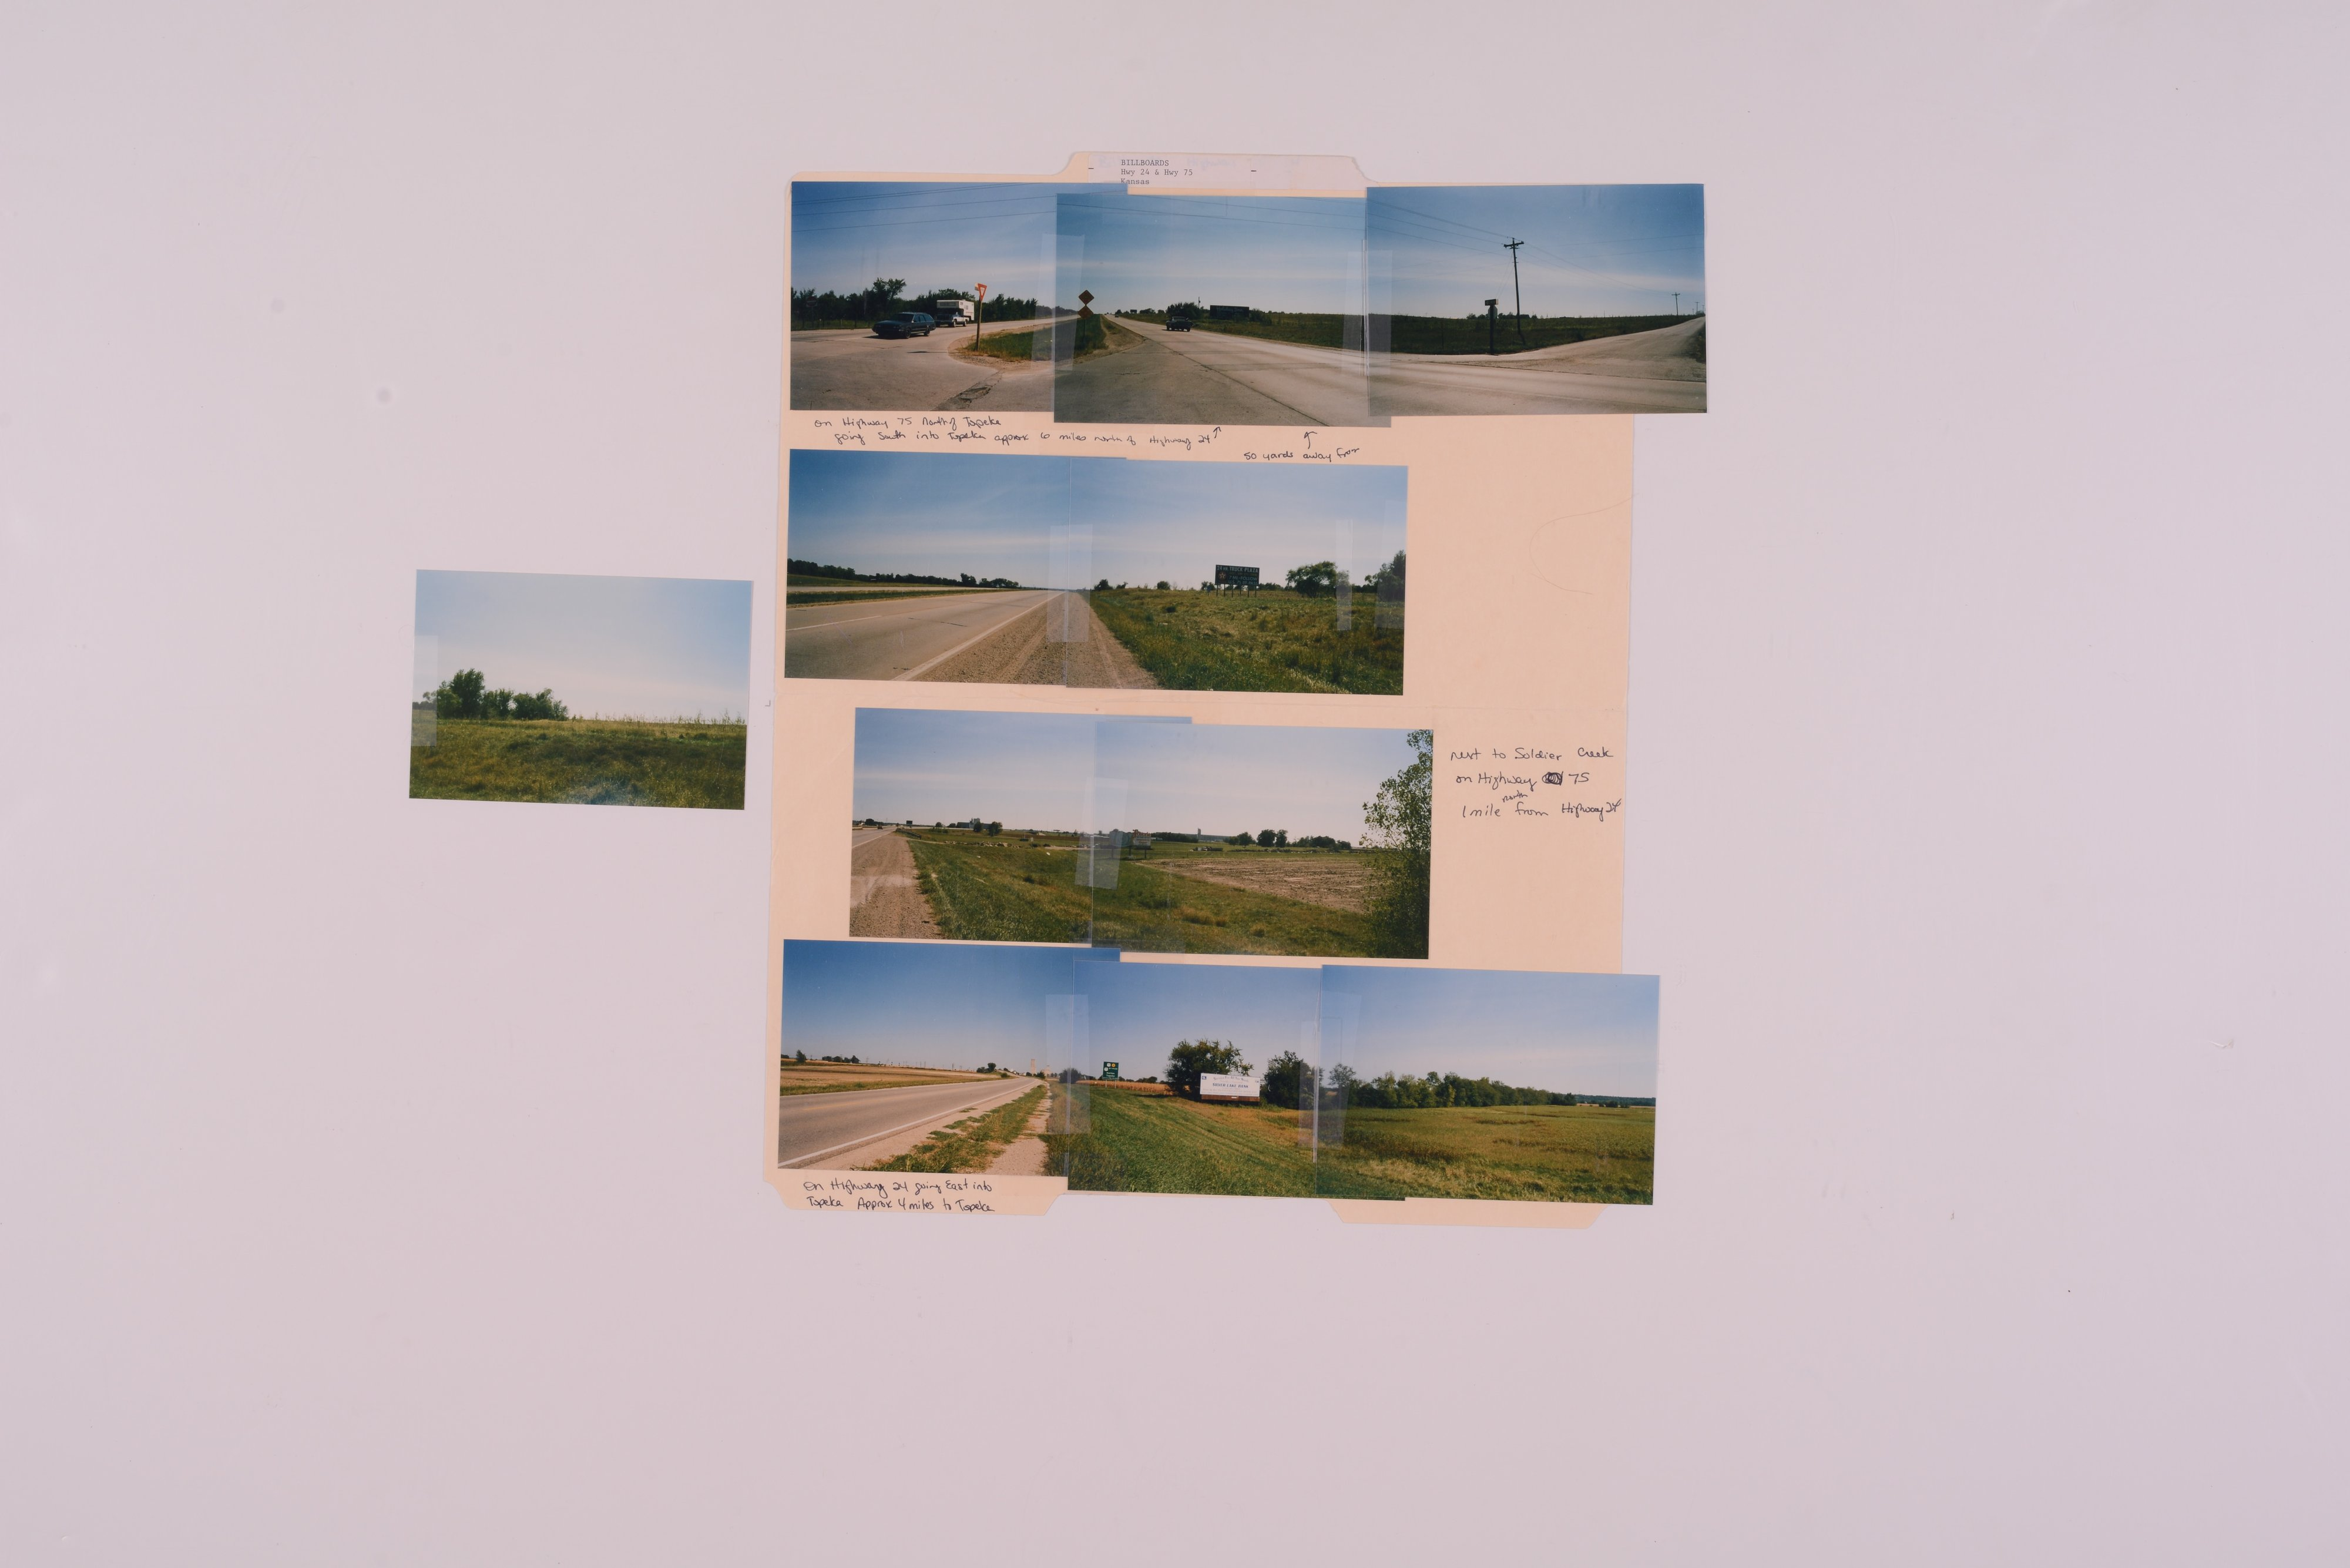 Kansas Film Commission site photographs, subject highway signs - hospitals - 8